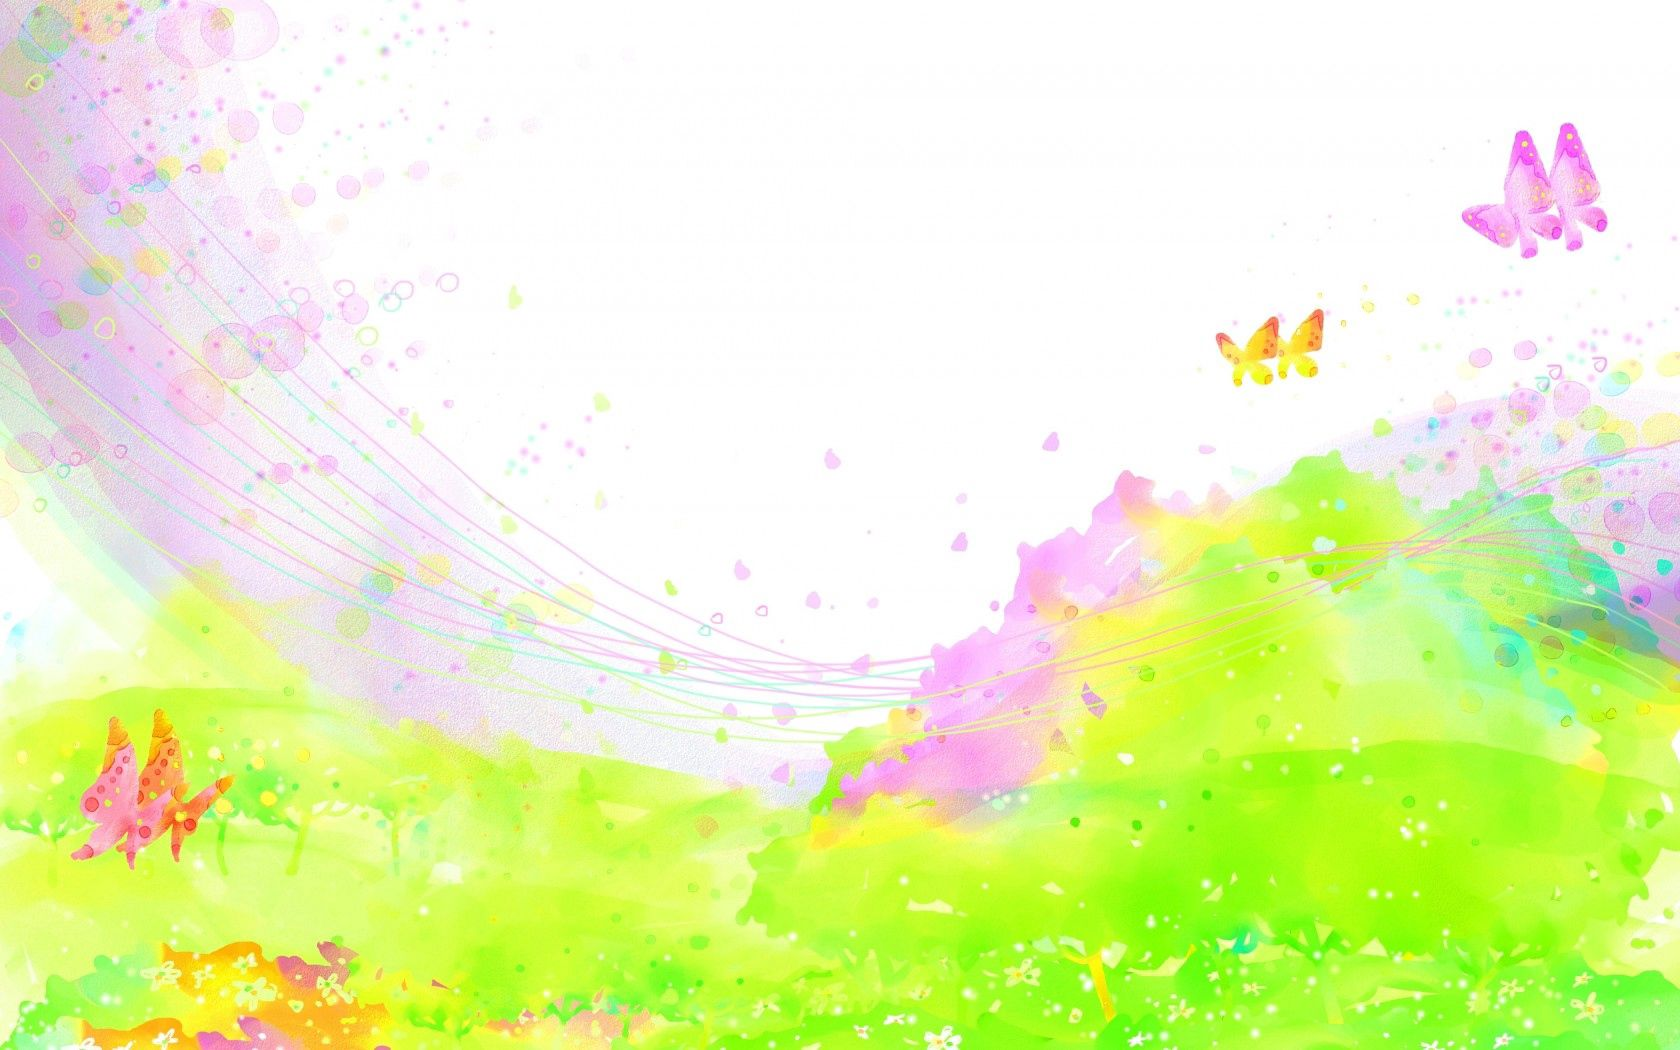 103136 Screensavers and Wallpapers Butterflies for phone. Download Abstract, Paints, Spray, Field, Butterflies, Flowers pictures for free